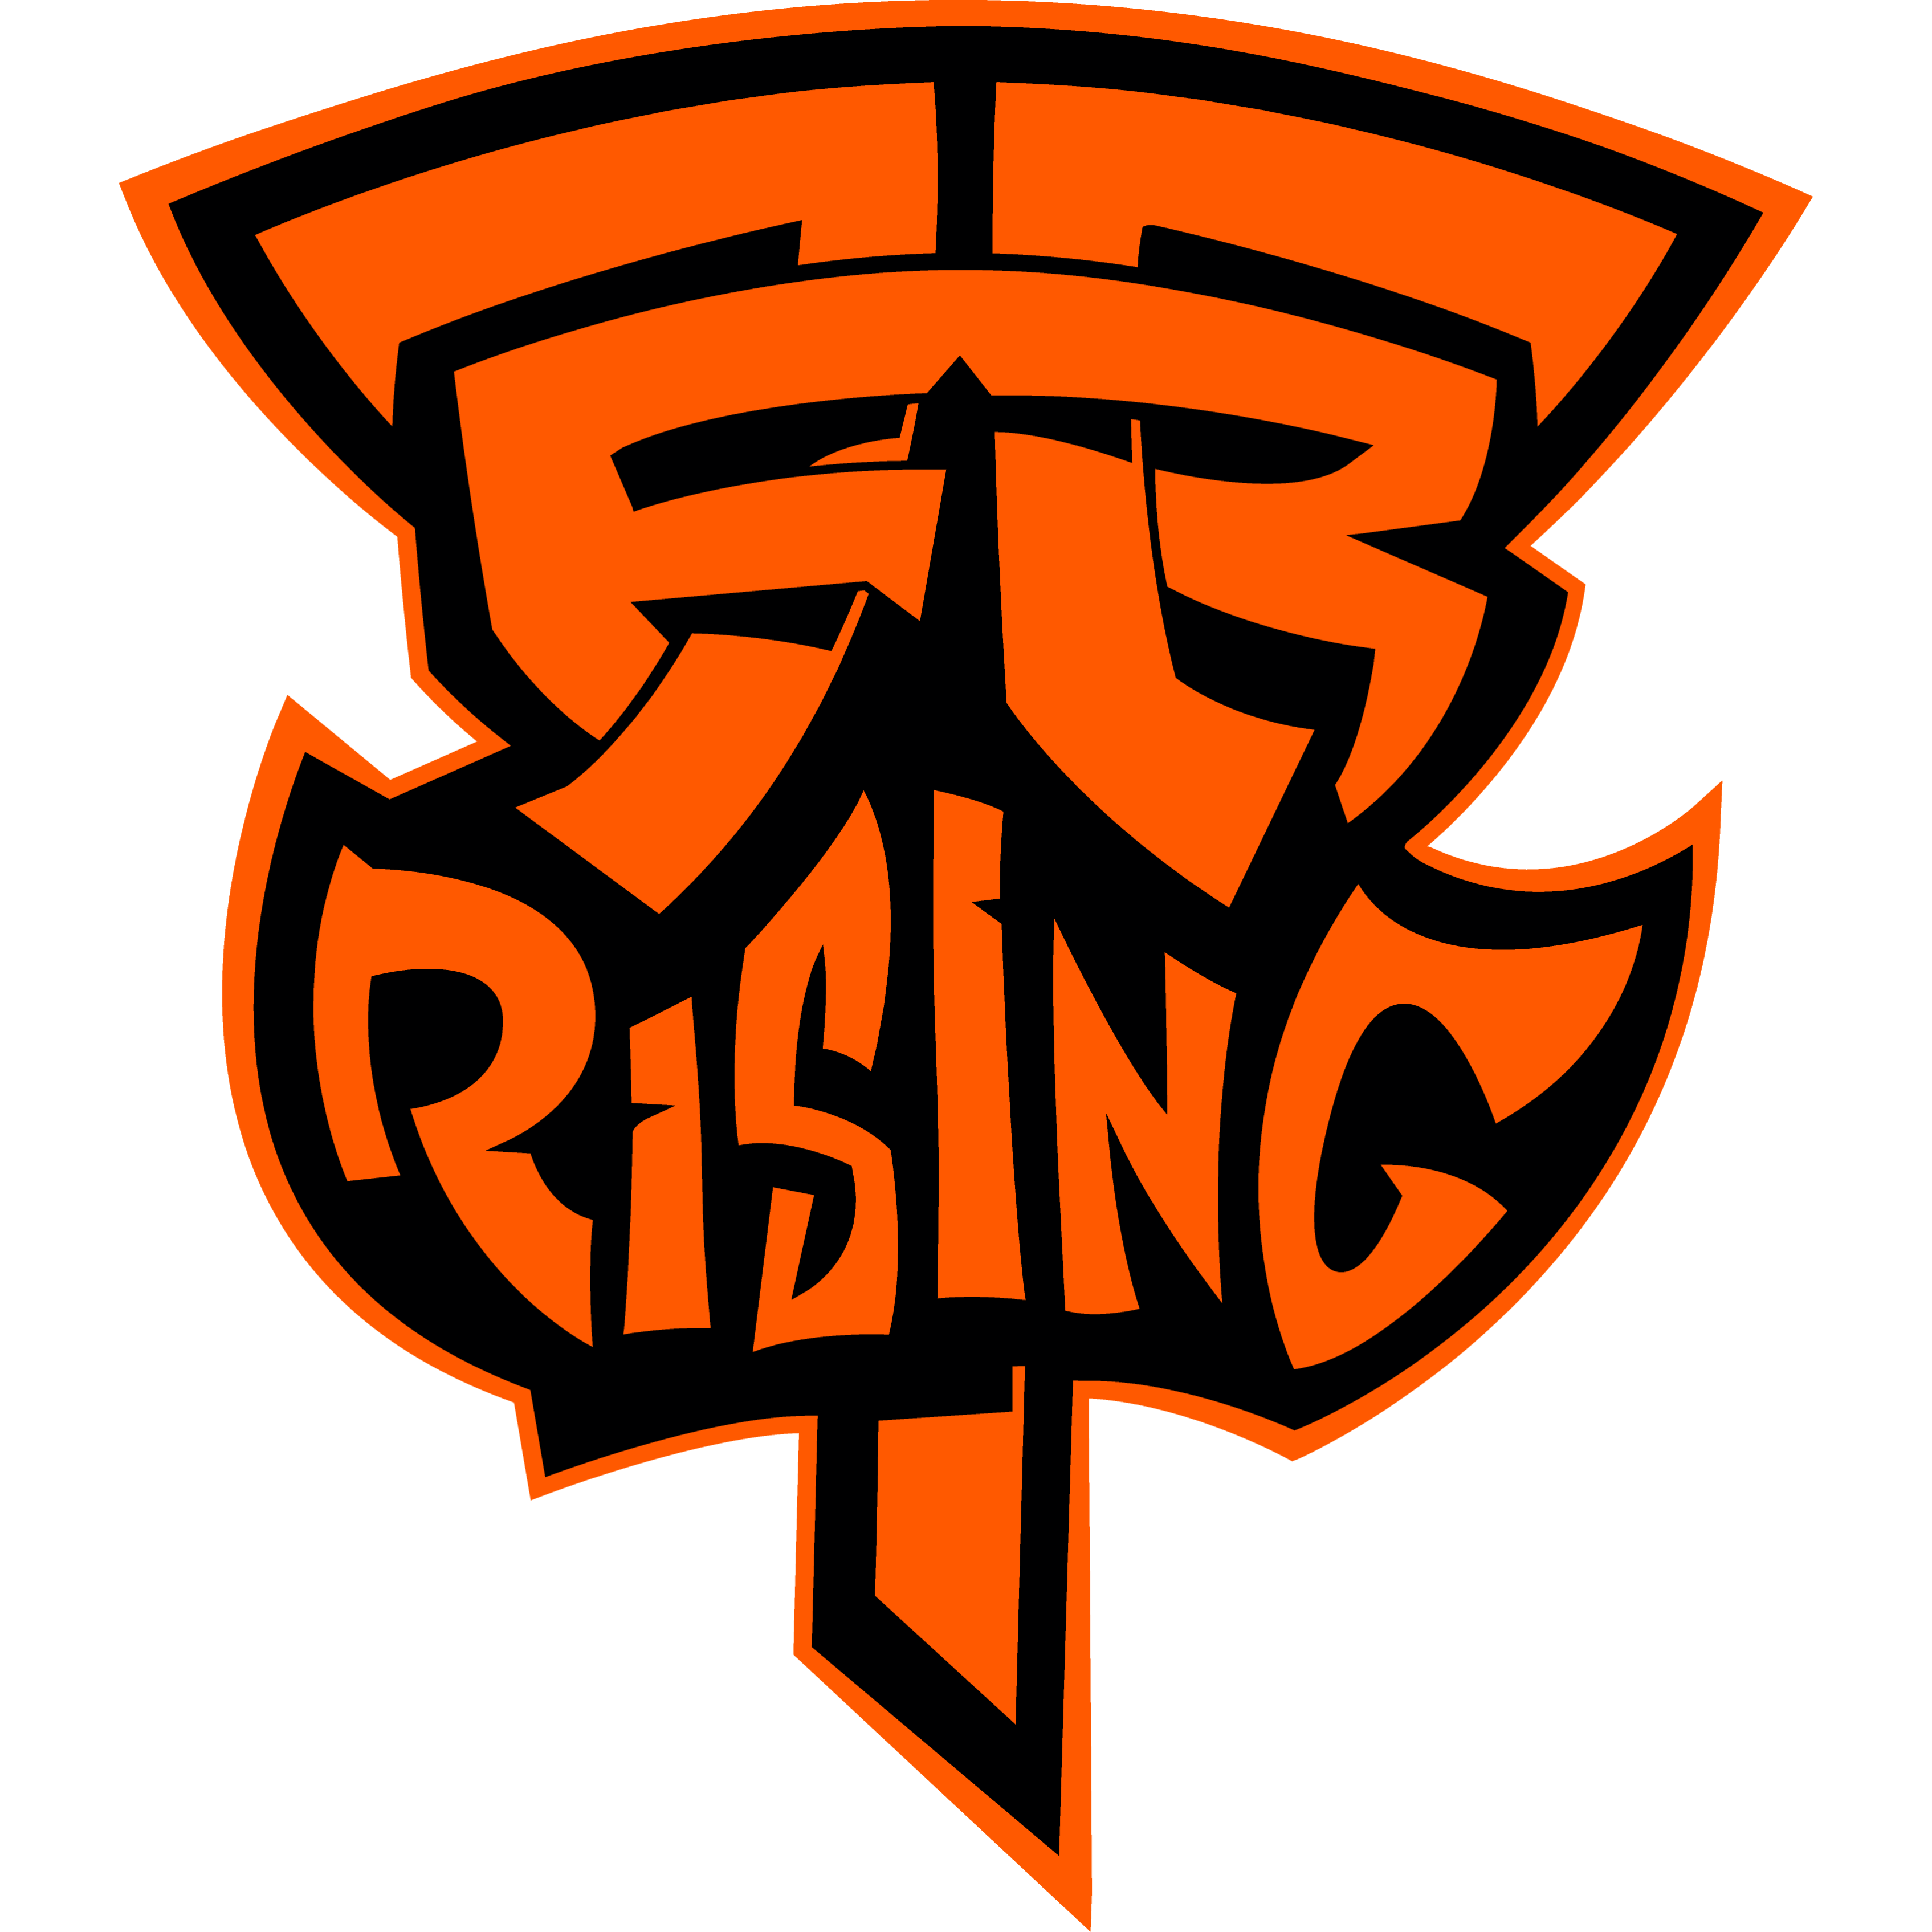 Fnatic Rising Leaguepedia League Of Legends Esports Wiki